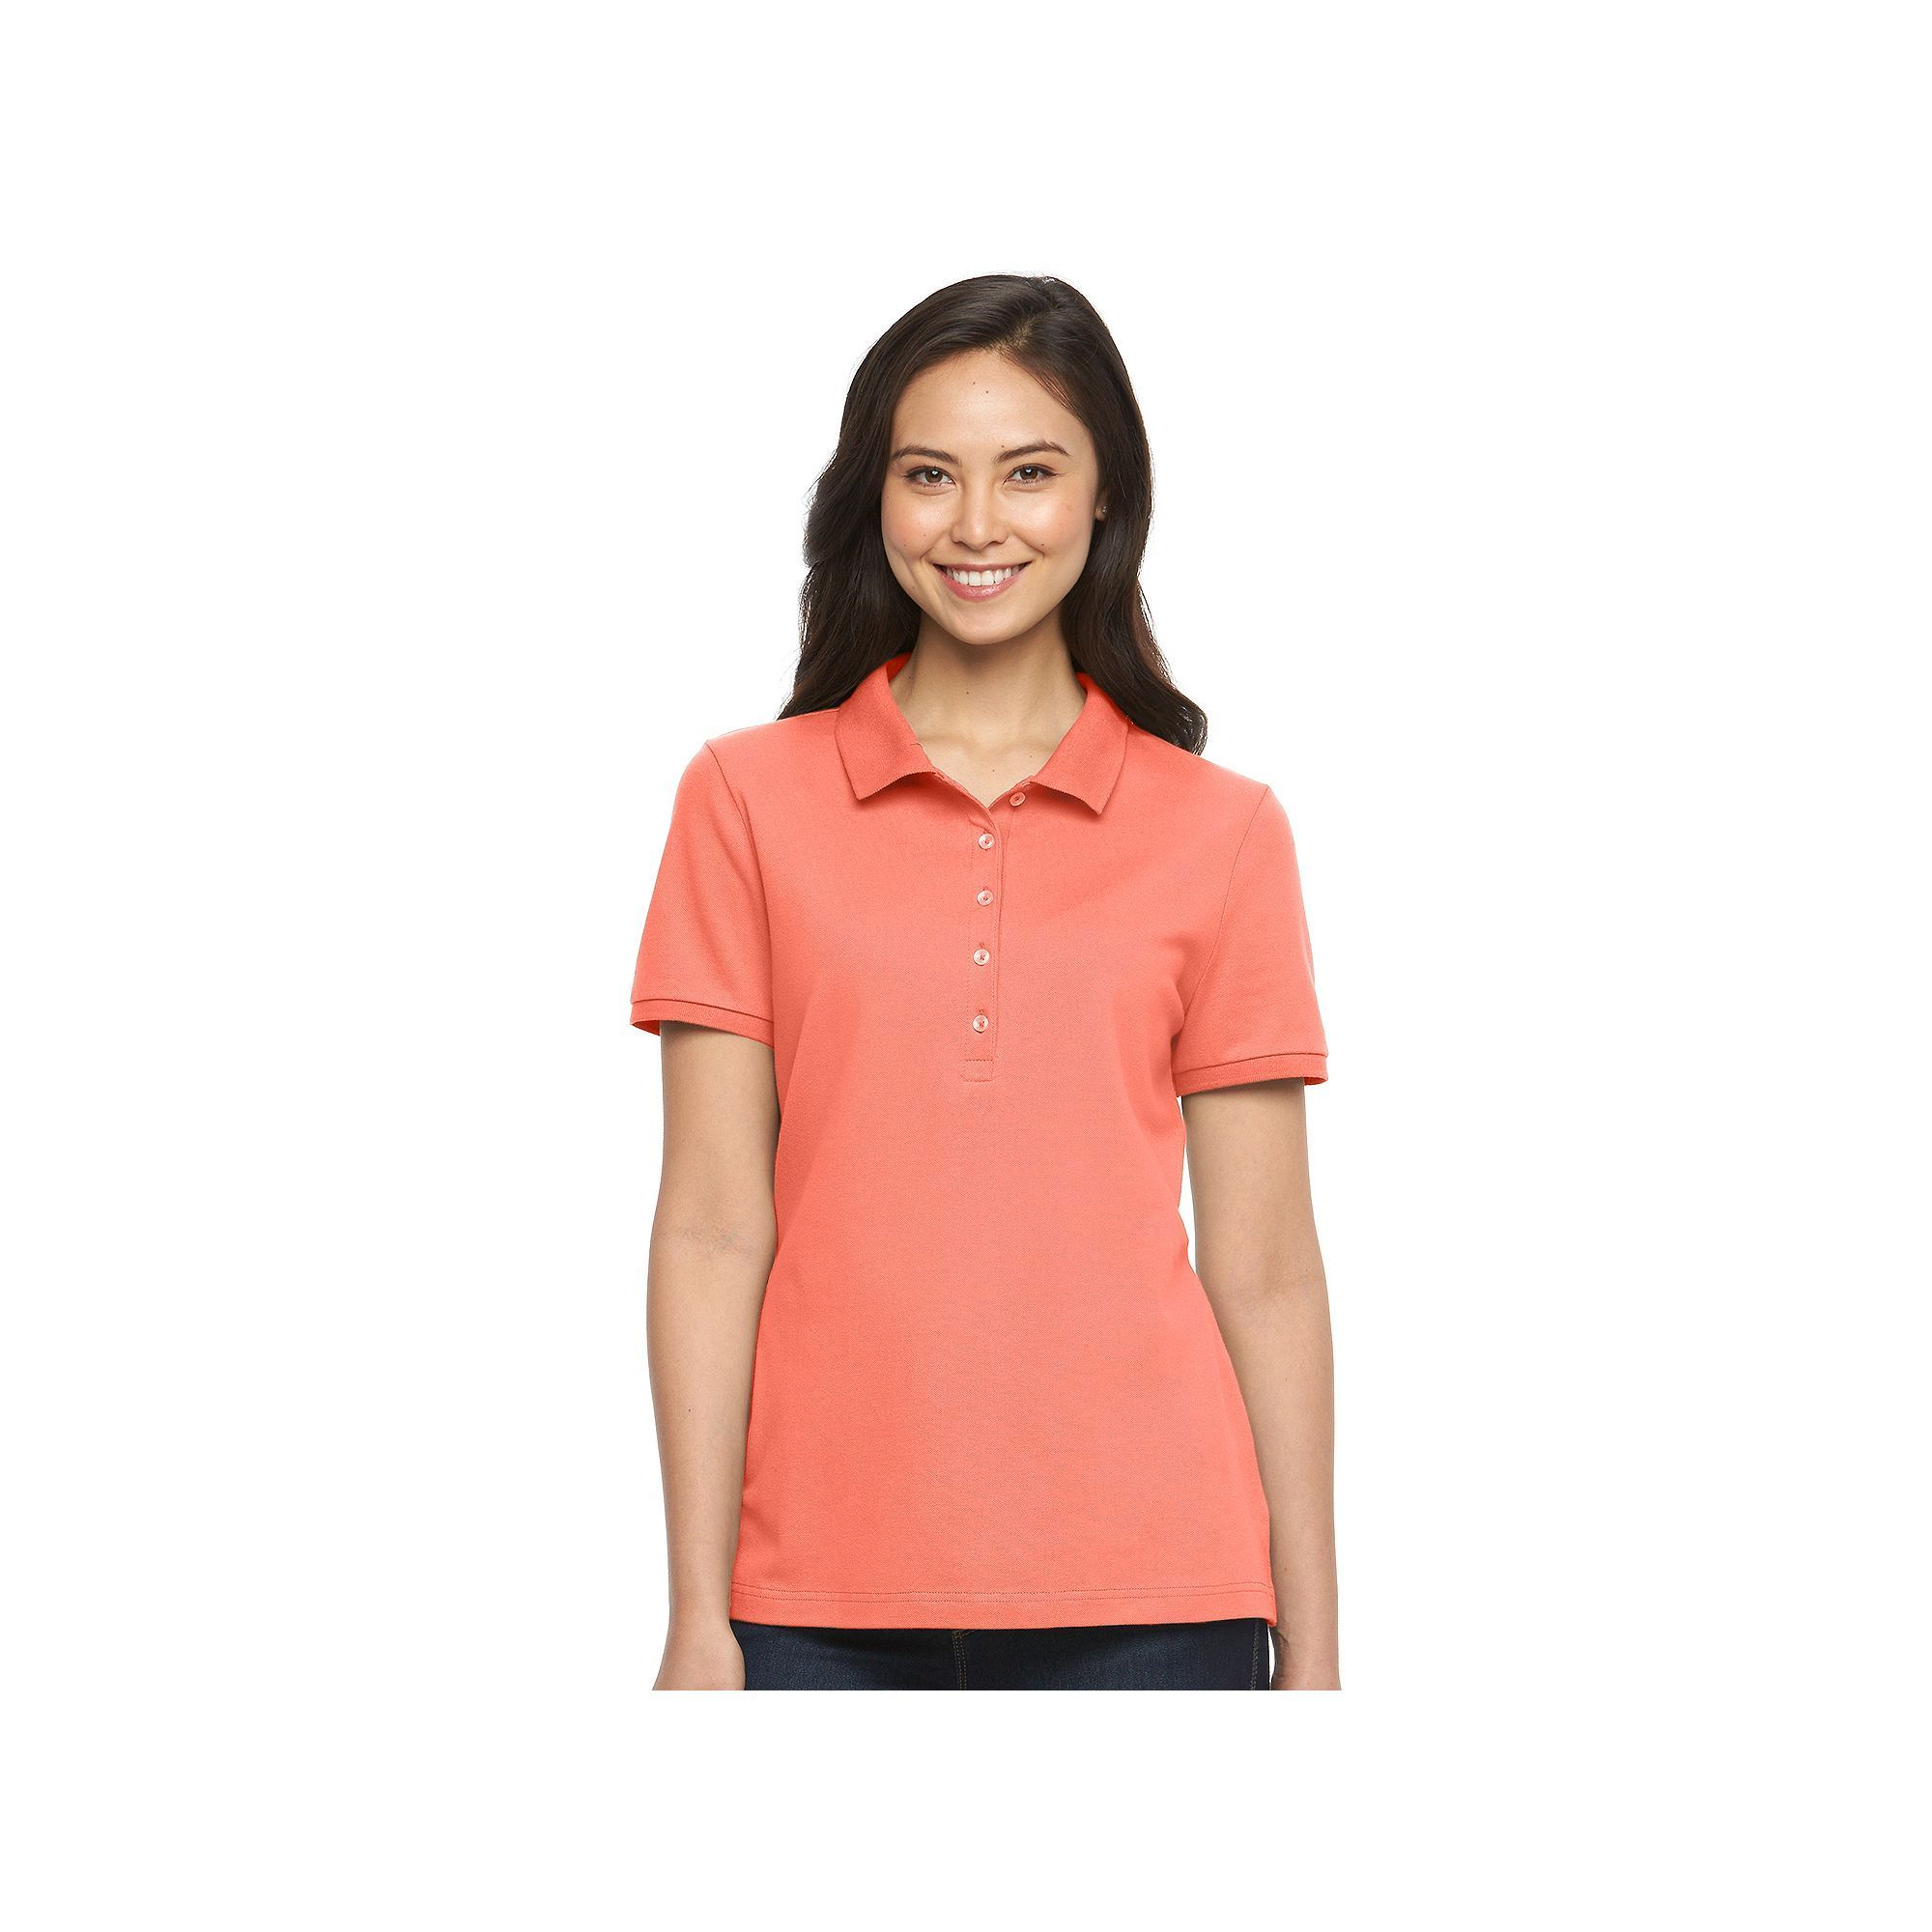 Women's Croft & Barrow® Classic Solid Polo, Size: Large, Med Orange